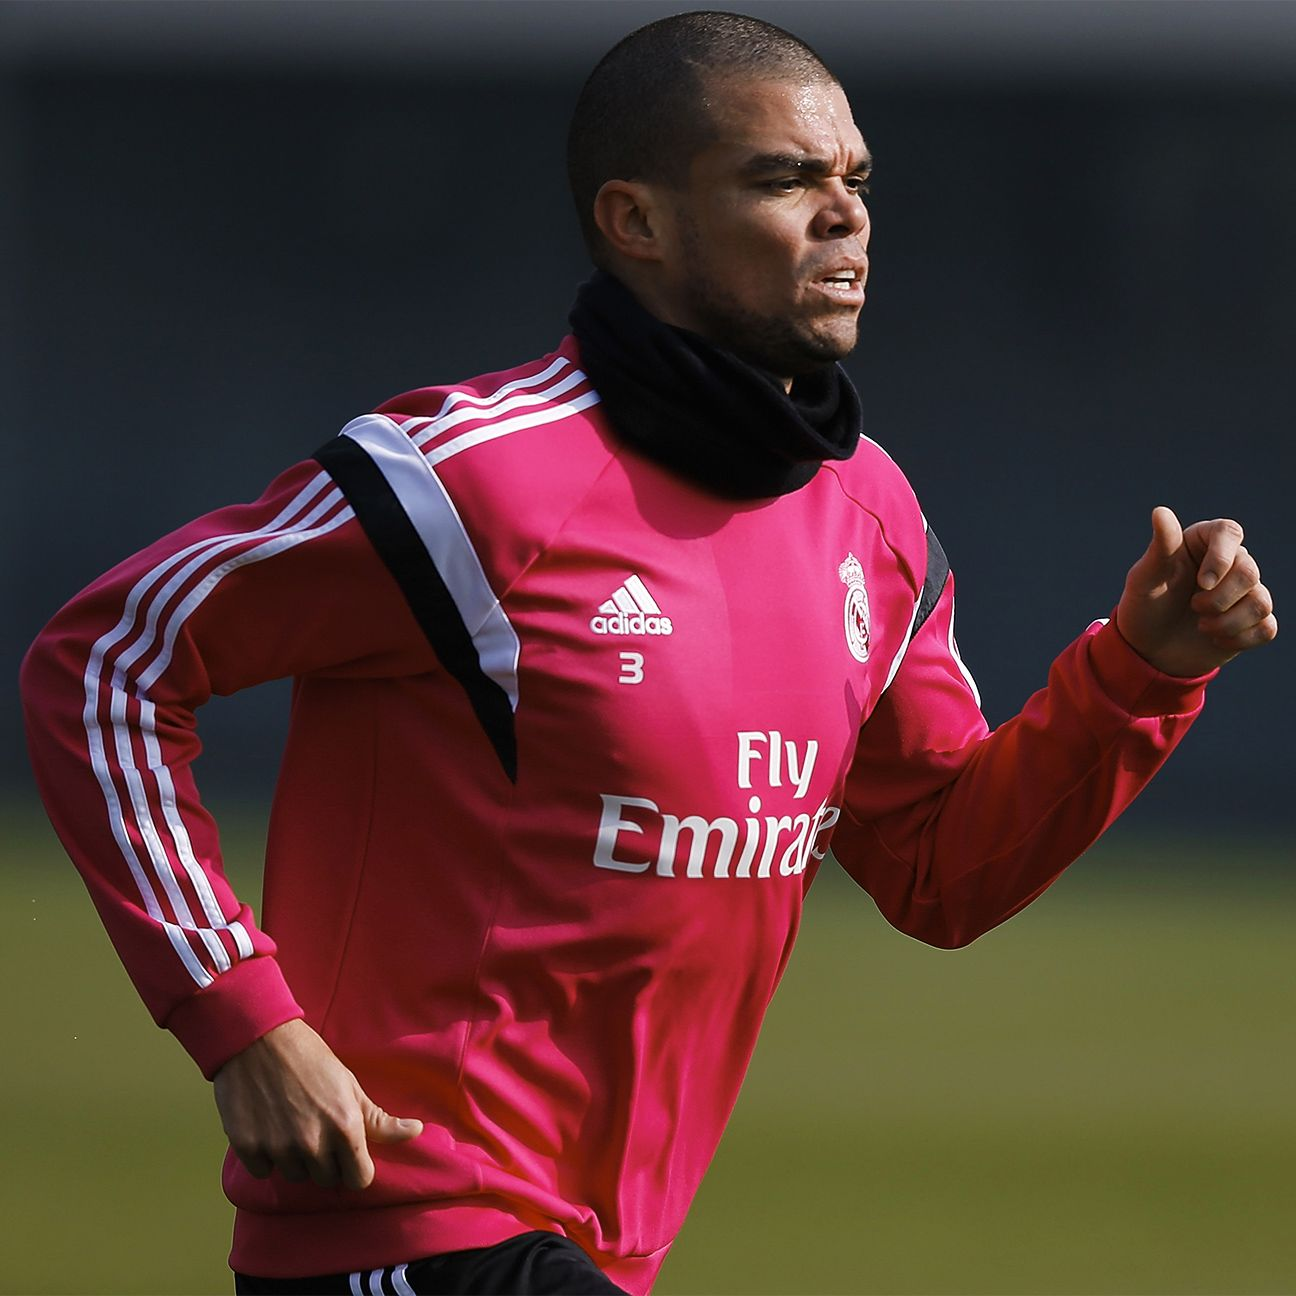 Pepe is slotted to start on the Real Madrid back line in his first match back from injury.